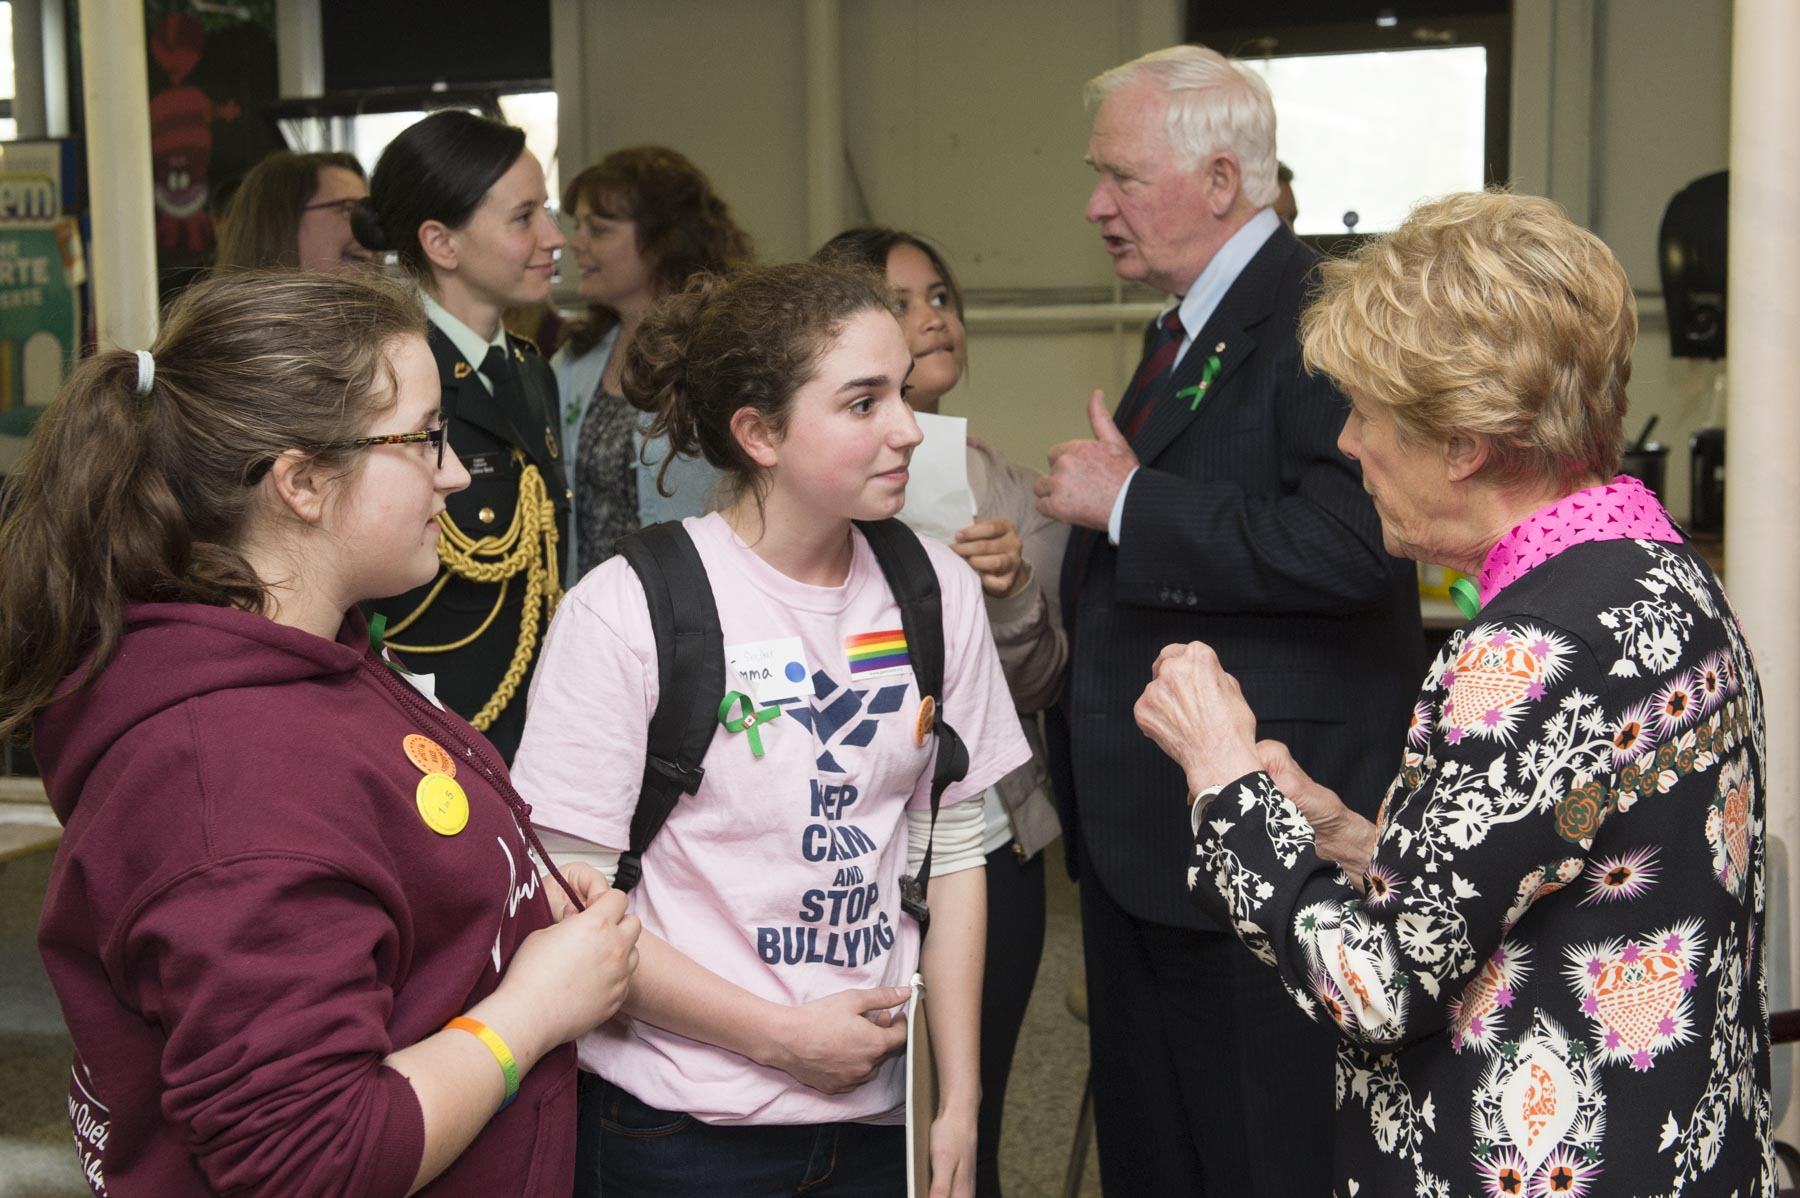 Their Excellencies took the time to meet with students and teachers from the school.